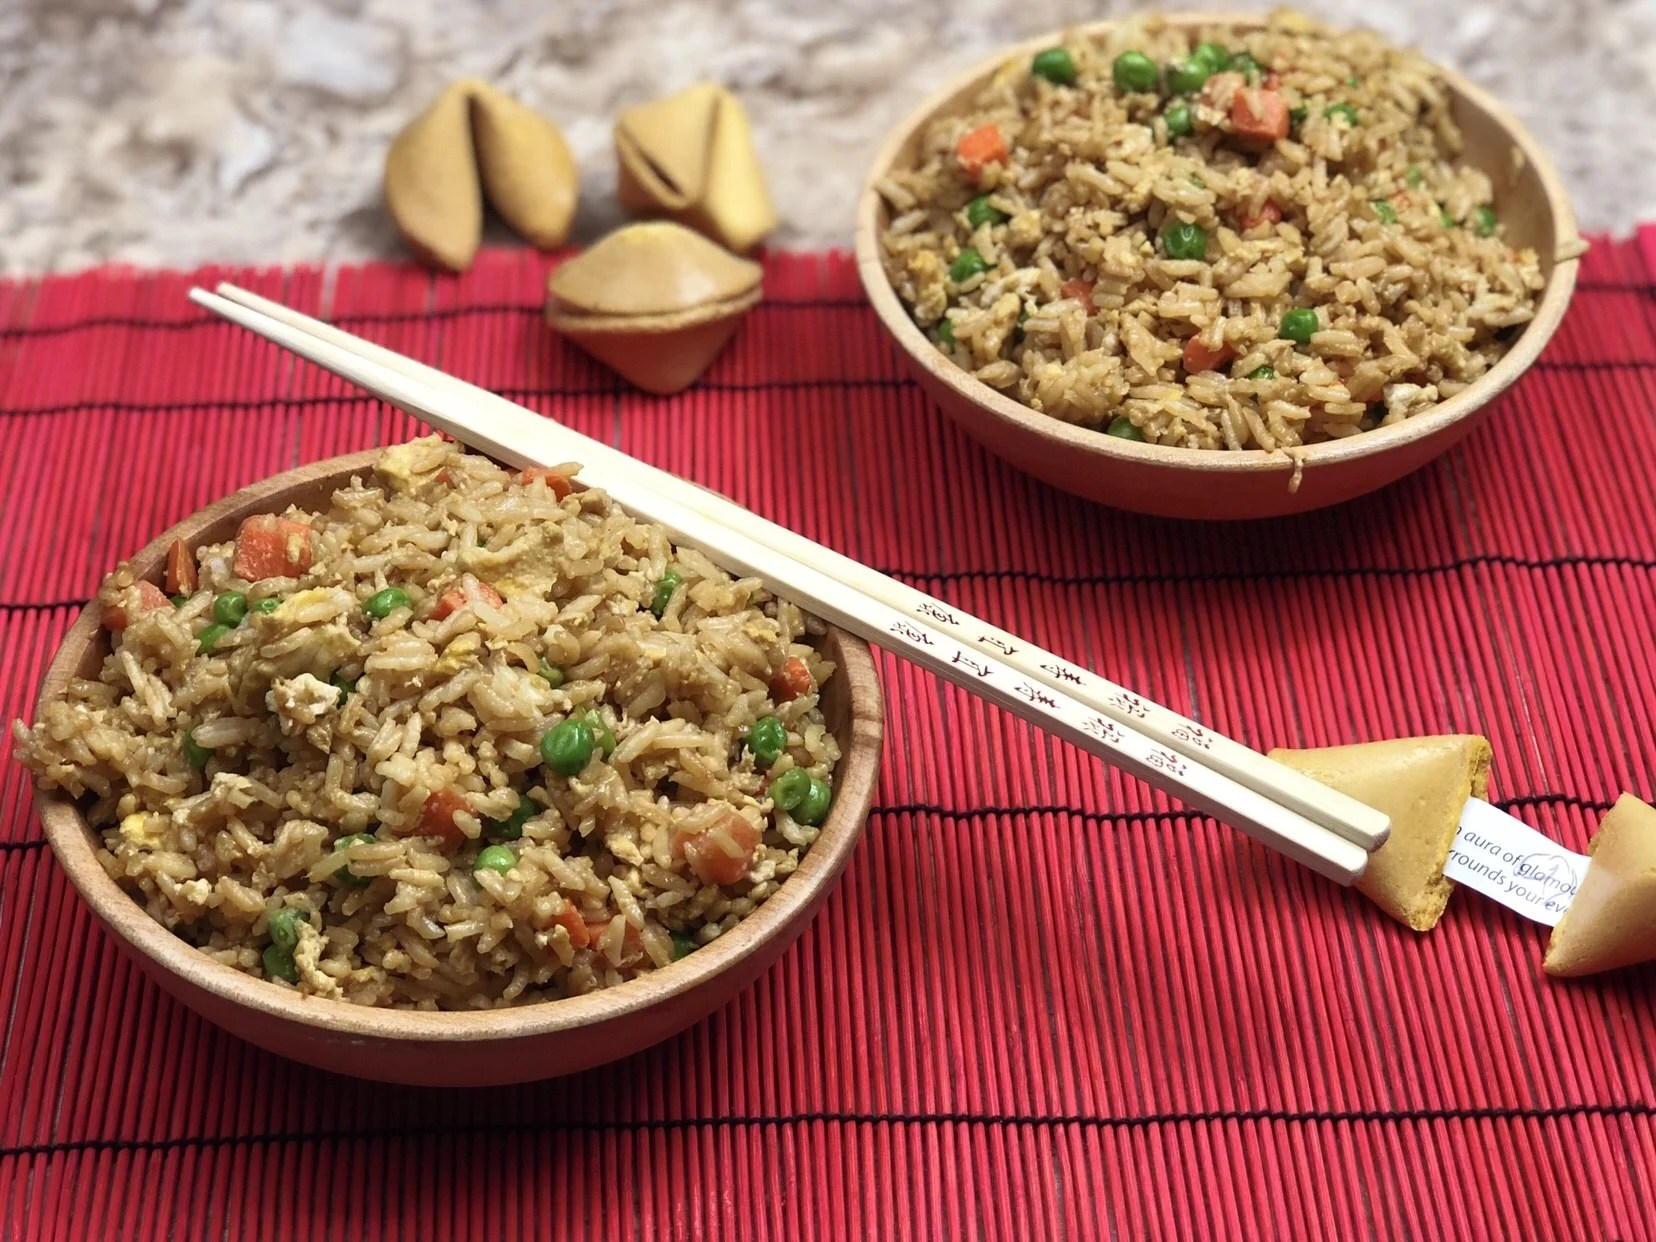 Forget ordering takeout and make your own Instant Pot Fried Rice that tastes better than takeout!  Thisfried rice in your instant pot is a straightforward recipe that gives your takeout flavors in under 10 minutes to make. #friedrice #instantpot #easy #easyrecipe #carrots #peas